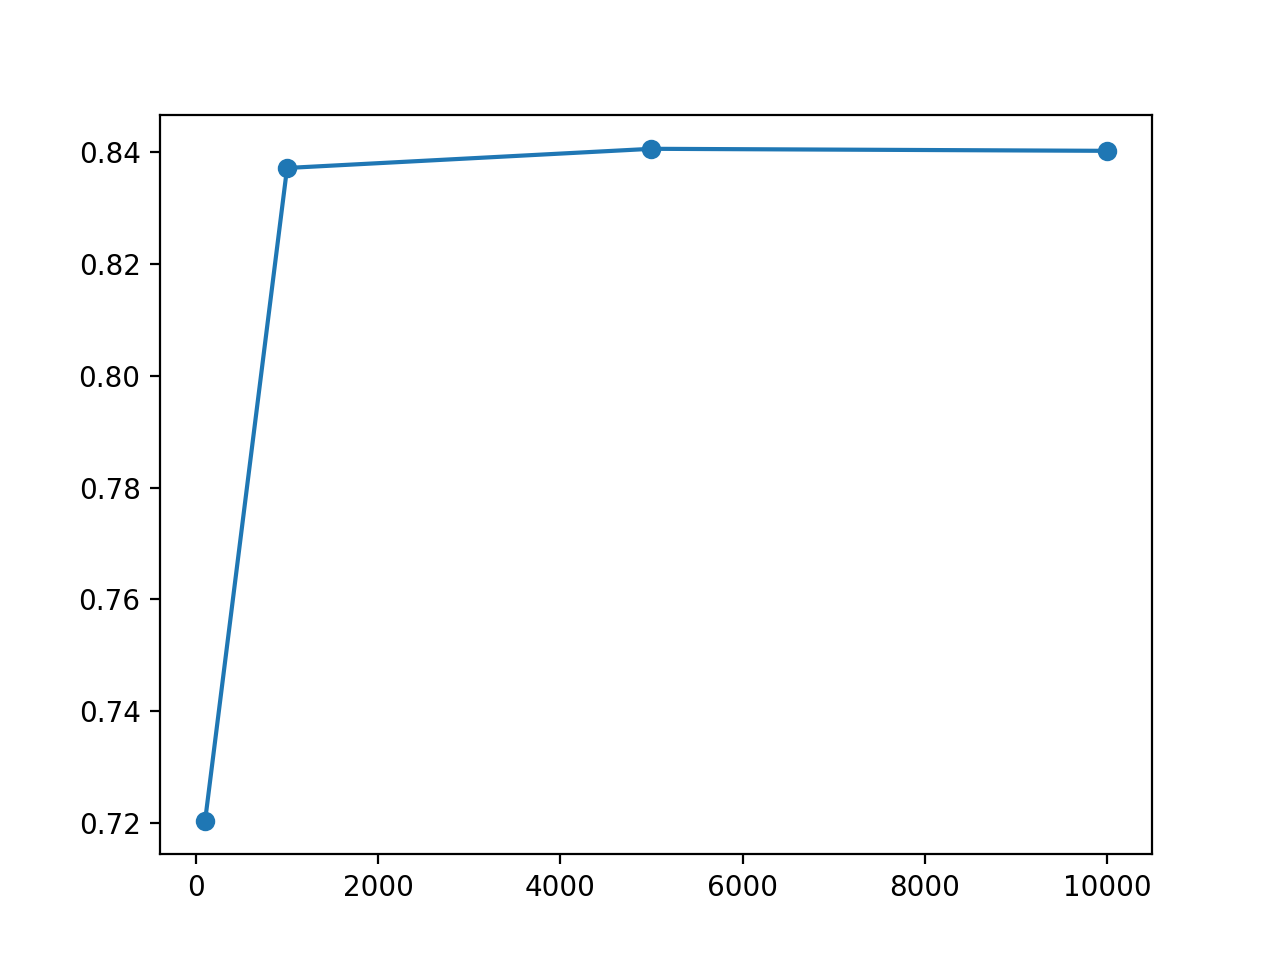 Line Plot of Training Set Size vs Test Set Accuracy for an MLP Model on the Circles Problem